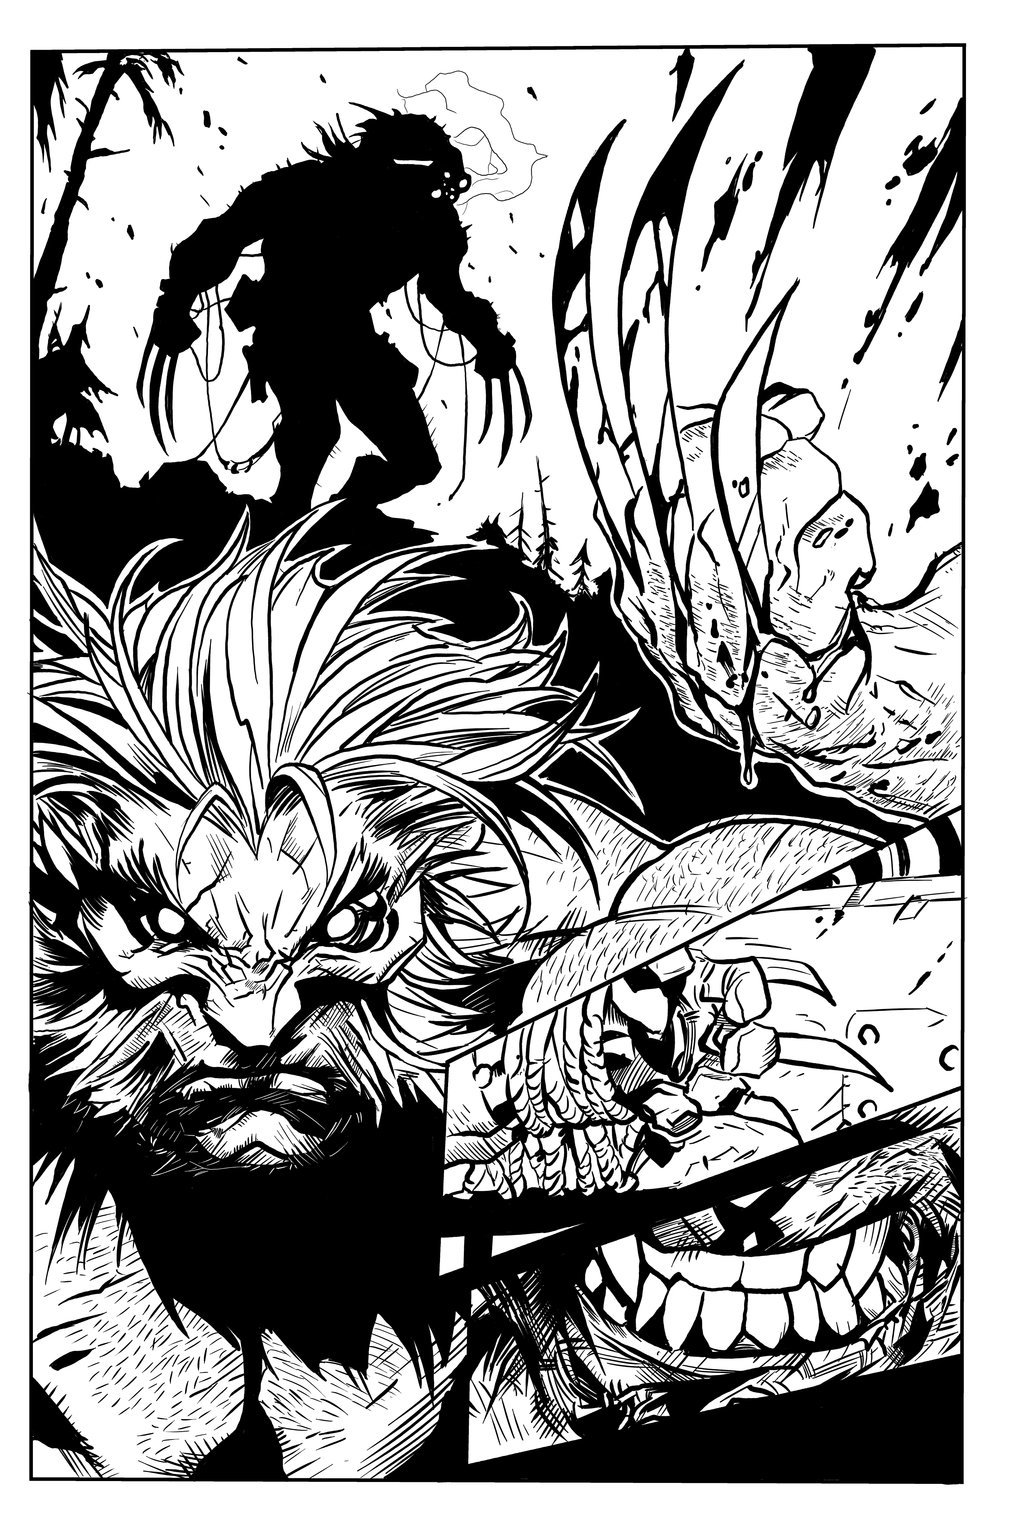 Matt james joe mad savage wolverine sequential sample 2 by mattjamescomicarts d82mv62